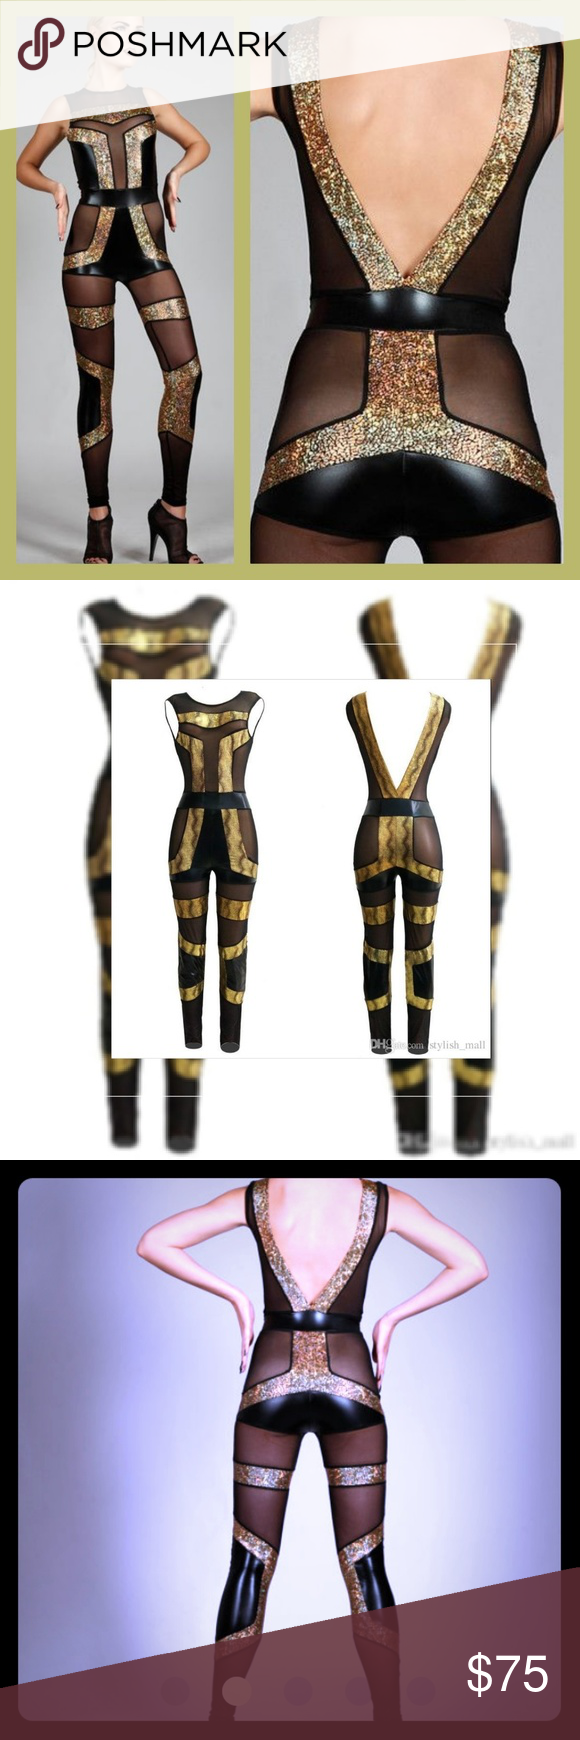 Futuristic Spandex Catsuit, Dance Costume jumpsuit Designed to draw attention and cut to flatter. Made from 48 pieces of fabric; a mixture of sheer mesh, holographic gold and shiny black spandex. Fits like a second skin yet allow ease of movement. Feature a round neckline and V-cut back, which makes it easy to take on/off.? Color & Material:? - Holographic Gold, Shiny Black: 80% polyester 20% cotton  - Sheer Black Mesh: 85% nylon, 15% spandex Pants Jumpsuits & Rompers